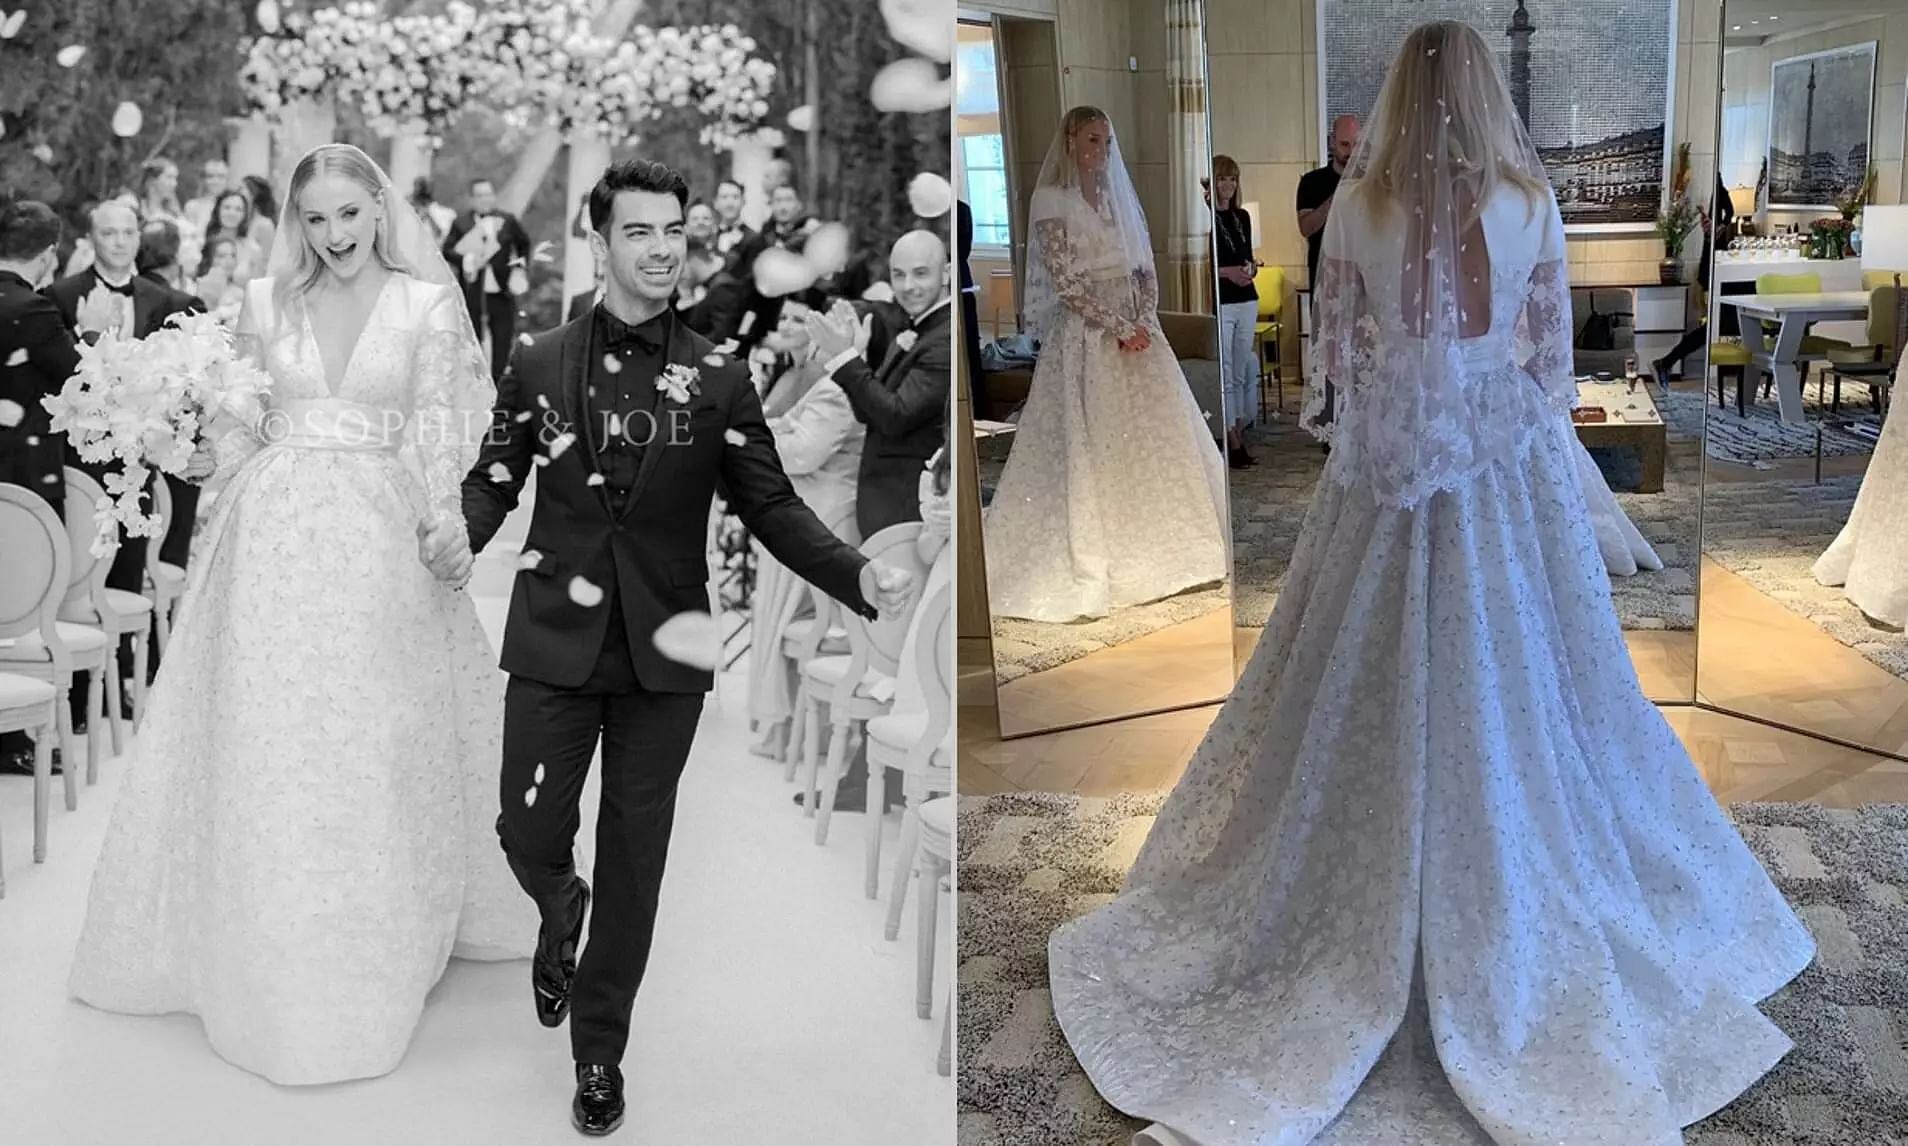 Some pictures of Sophie Turner and Joe Jonas's wedding